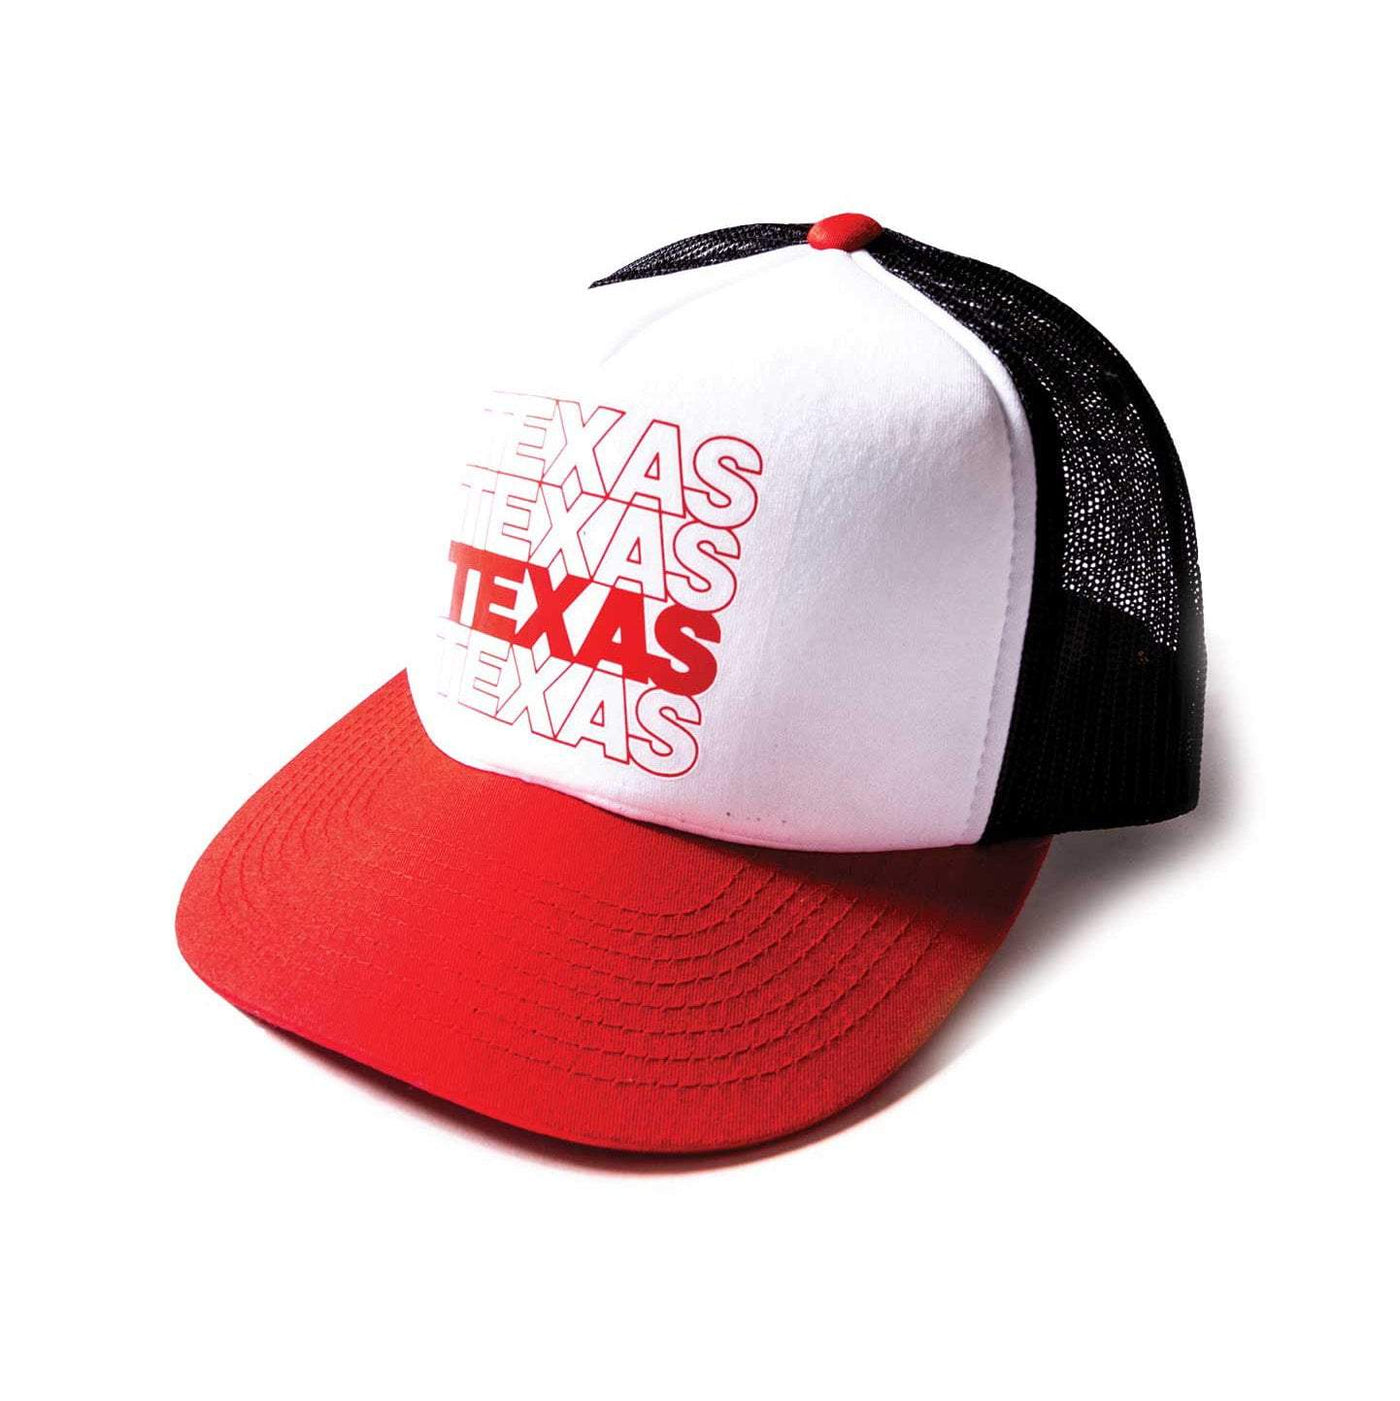 b8b03fa345030 Clothing for the Texan state of mind.